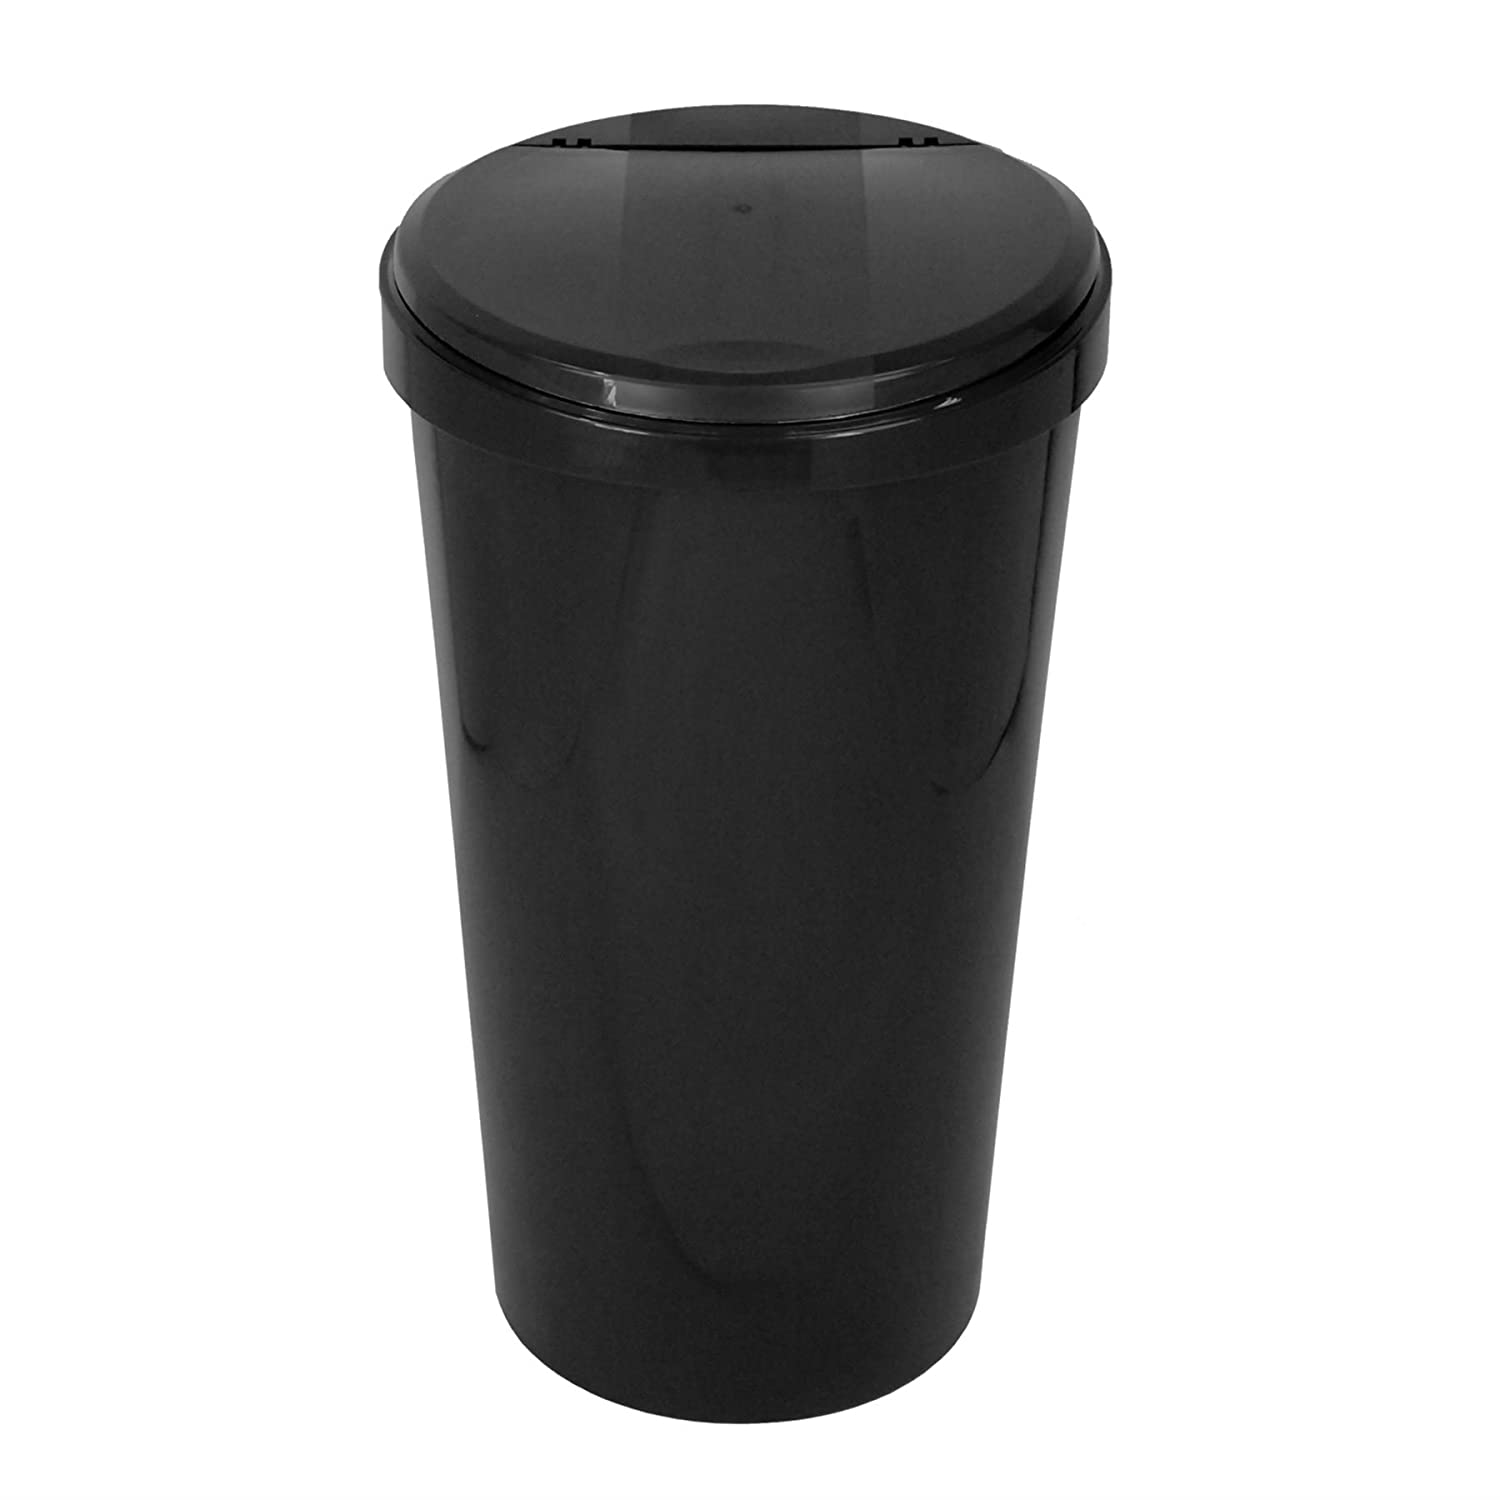 1 x Simpa® 45L 45 Litre Black Touch Top Kitchen Bin Dustbin Rubbish Bin Heavy Duty Gloss Plastic Finish Durable Design with Easy Open Touch Top Lid.